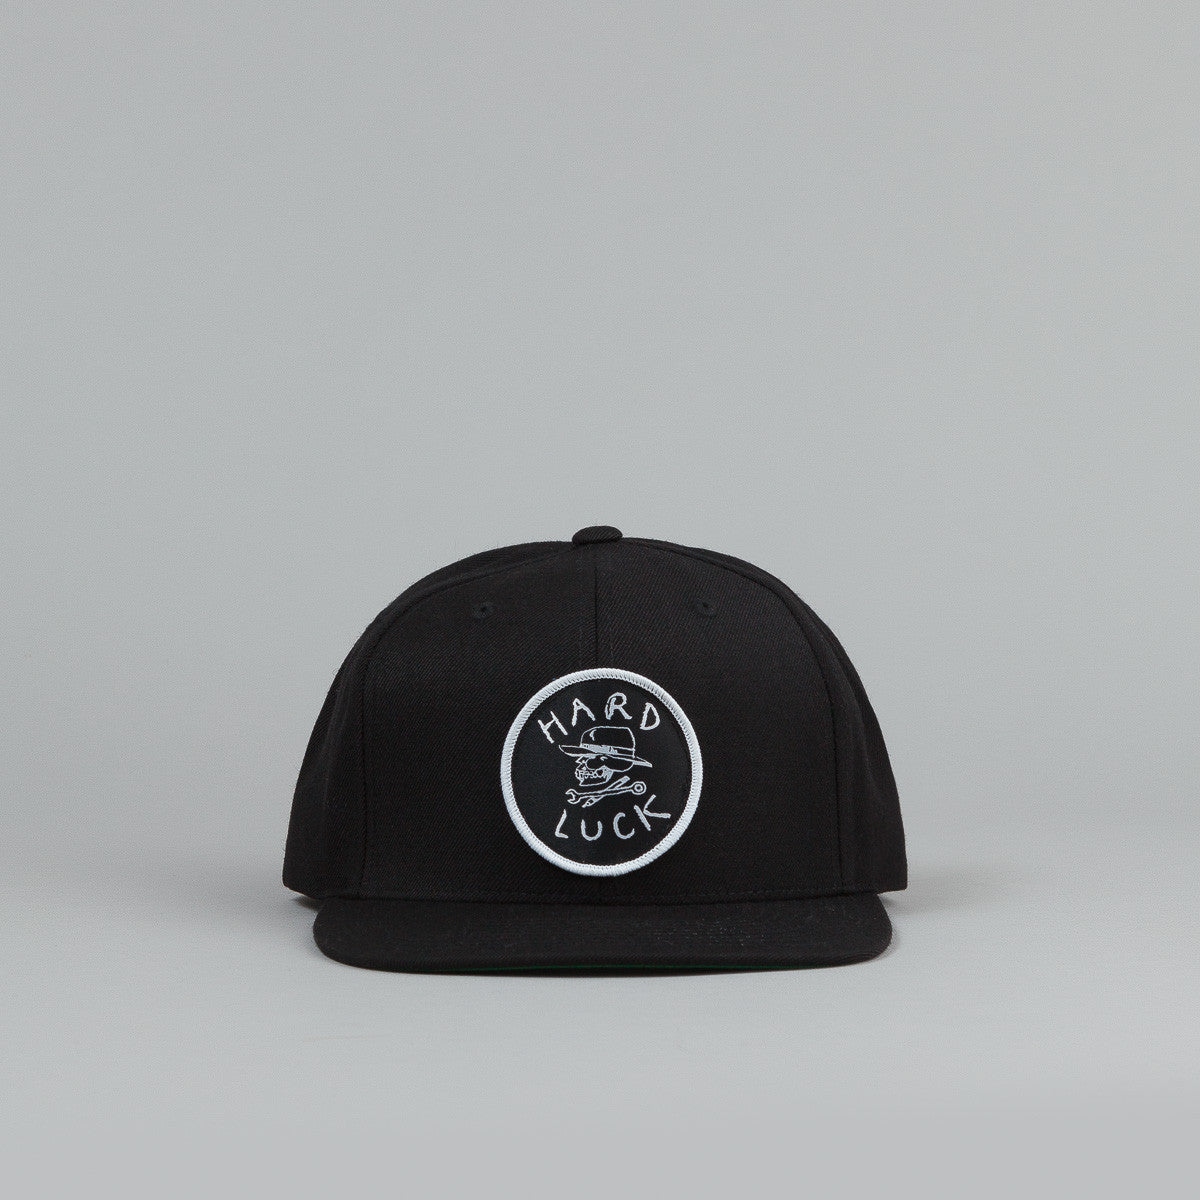 Hard Luck Snapback Cap Black